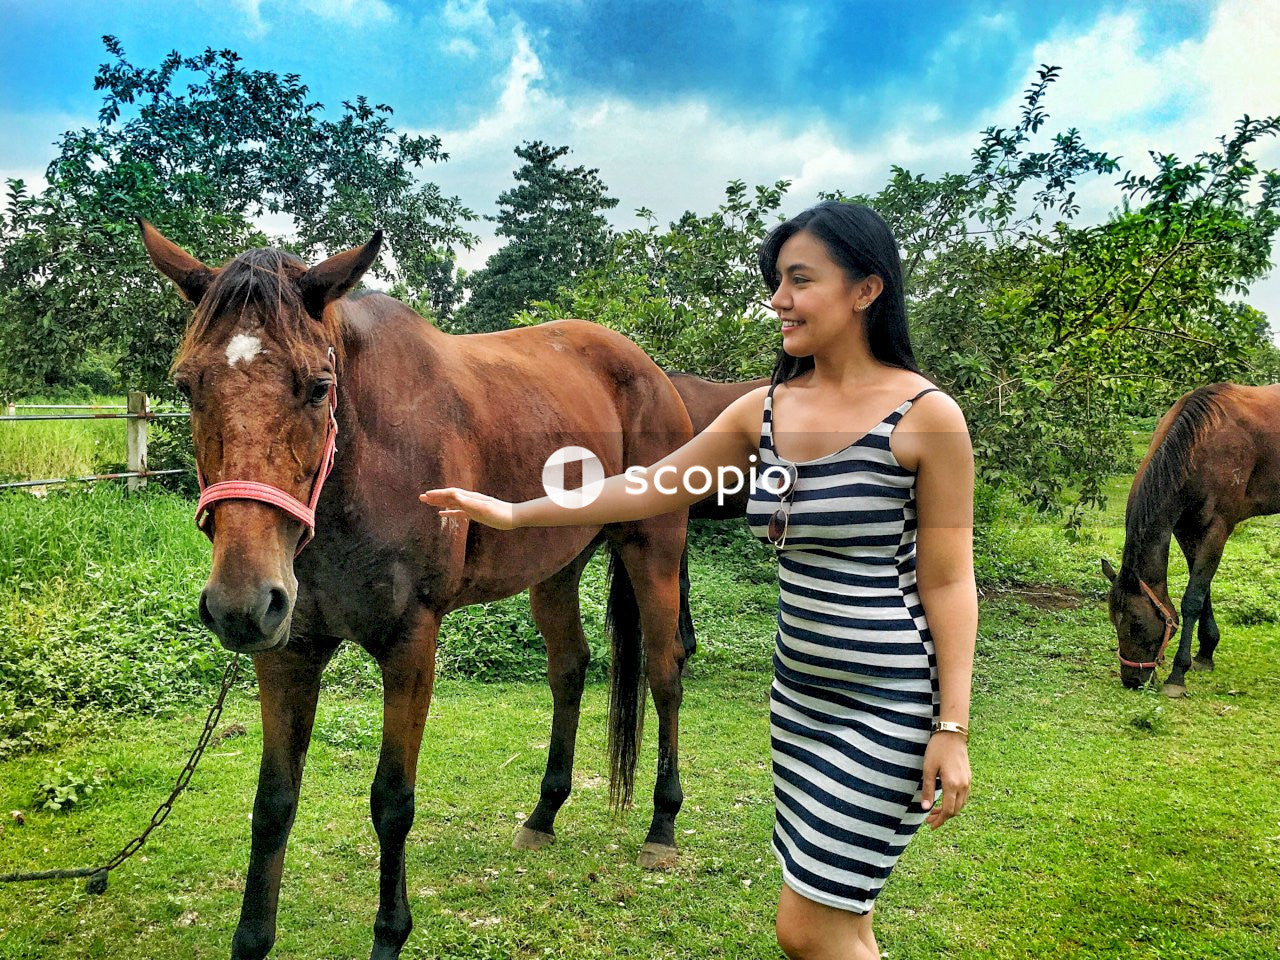 Woman in black and white striped dress standing beside brown horse